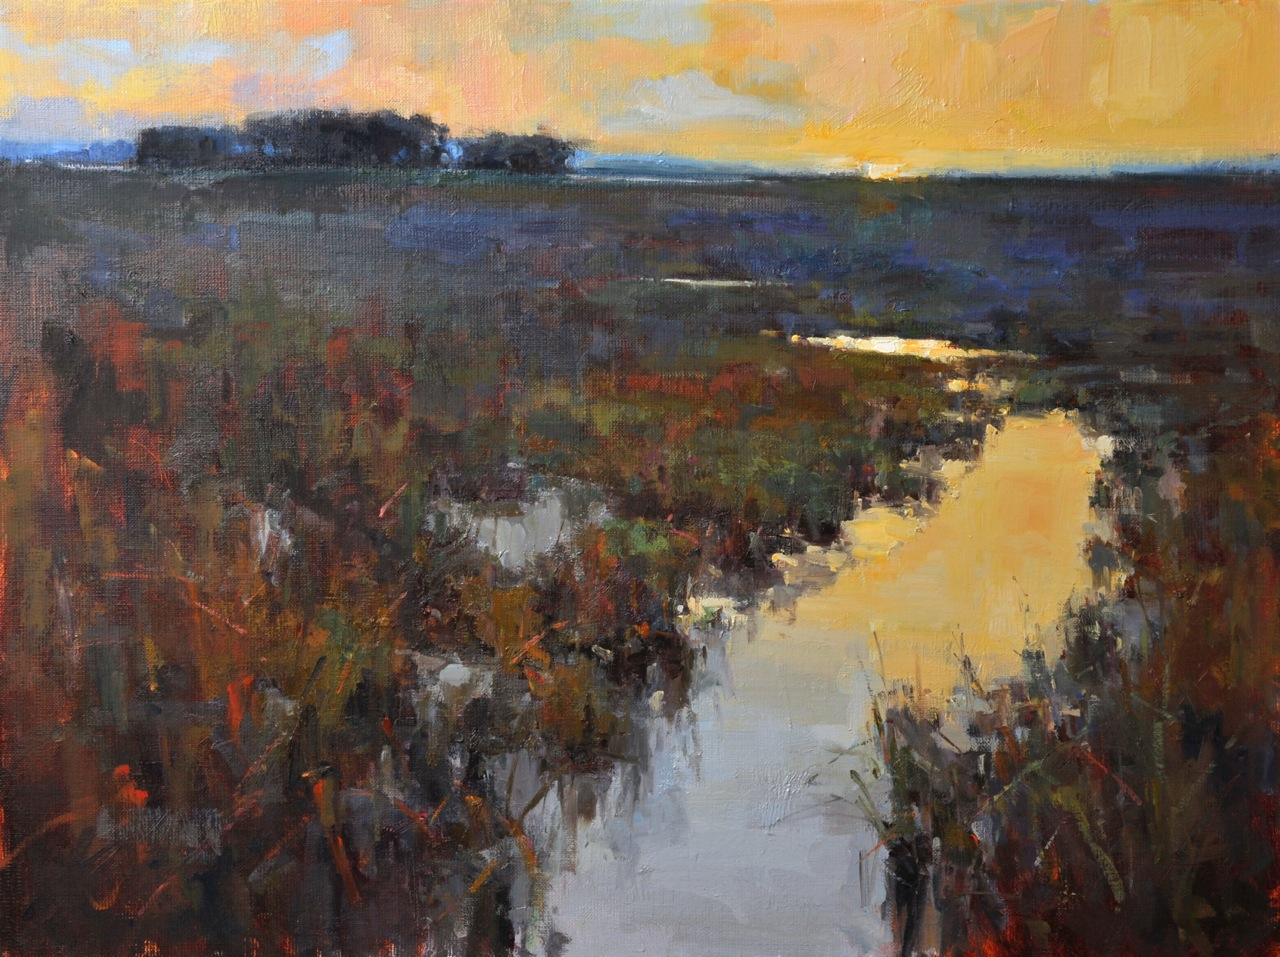 valerie craig at the laffer gallery, painting, lanscape, painting, fine art, gallery